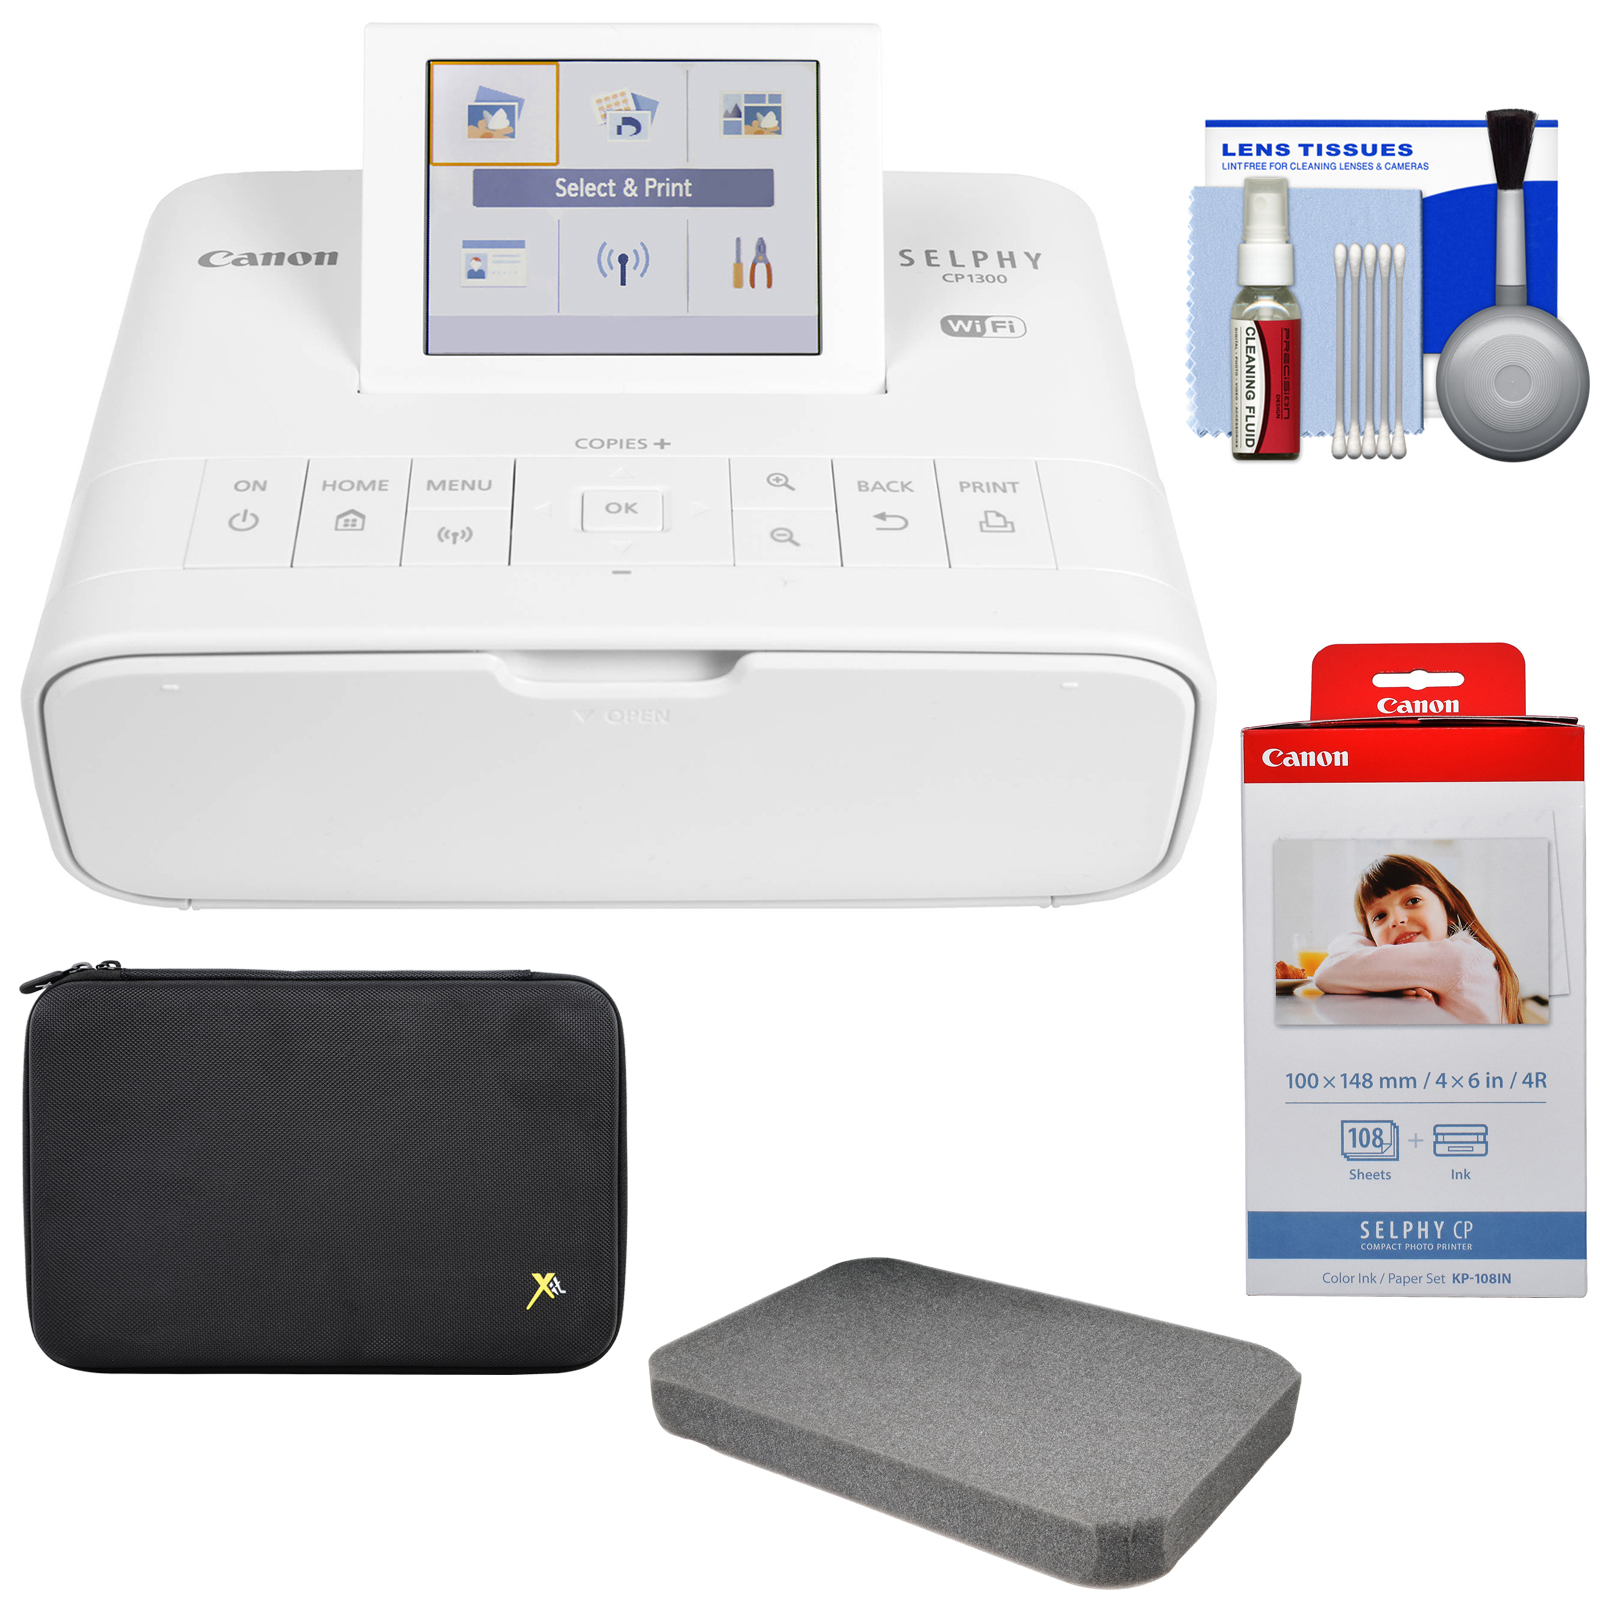 Canon SELPHY CP1300 Wi-Fi Wireless Compact Photo Printer (White) with KP-108IN Color Ink Paper Set + Custom Case + Kit